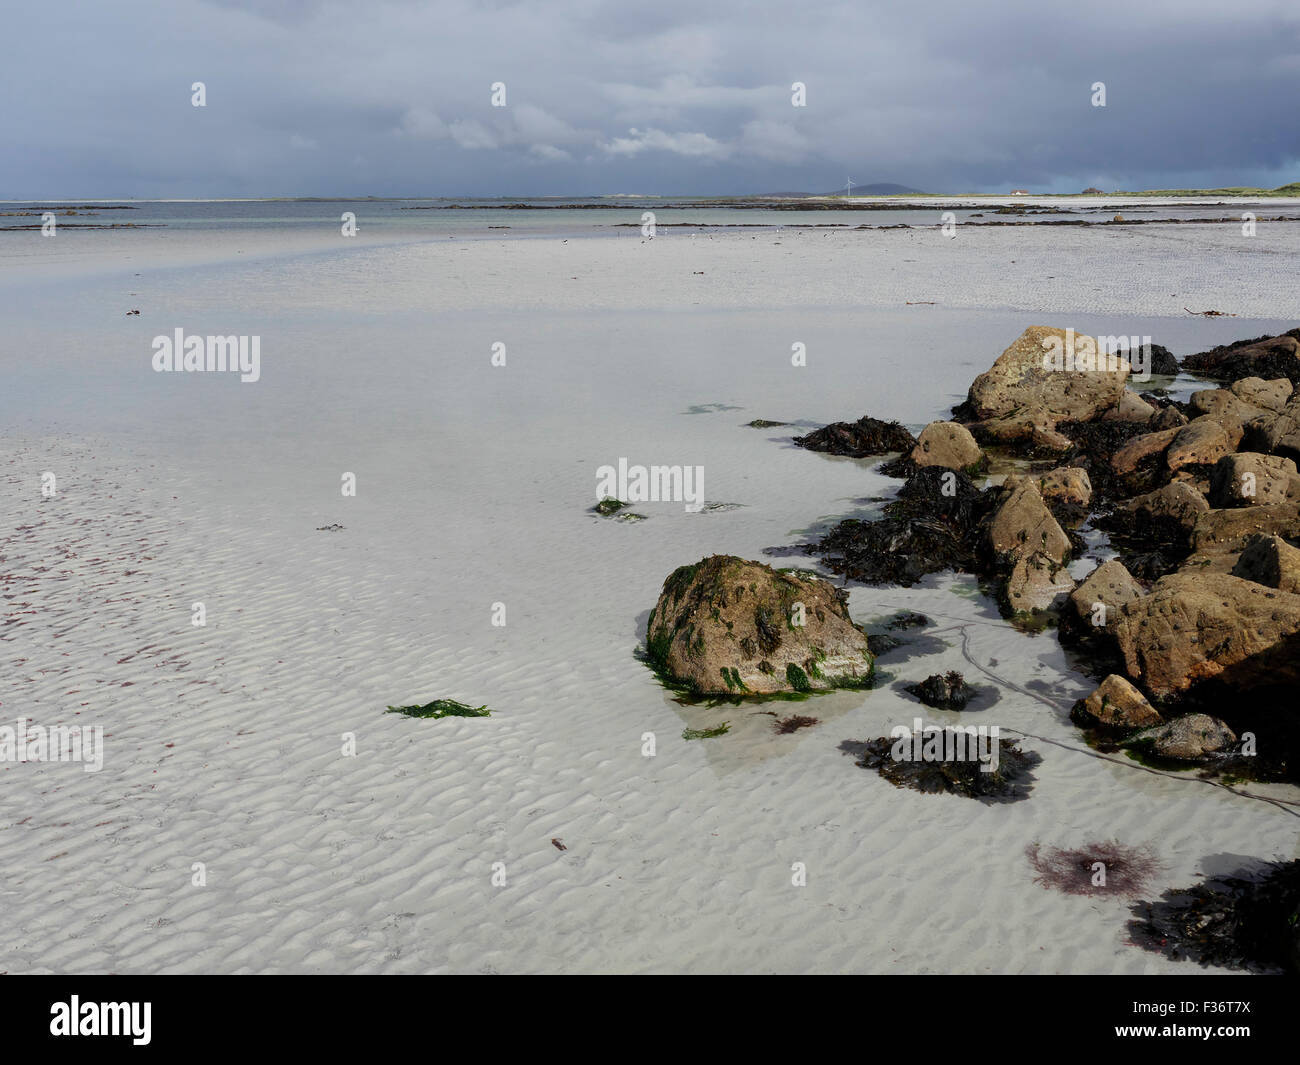 South Uist, Hebrides, September 2015 - Stock Image